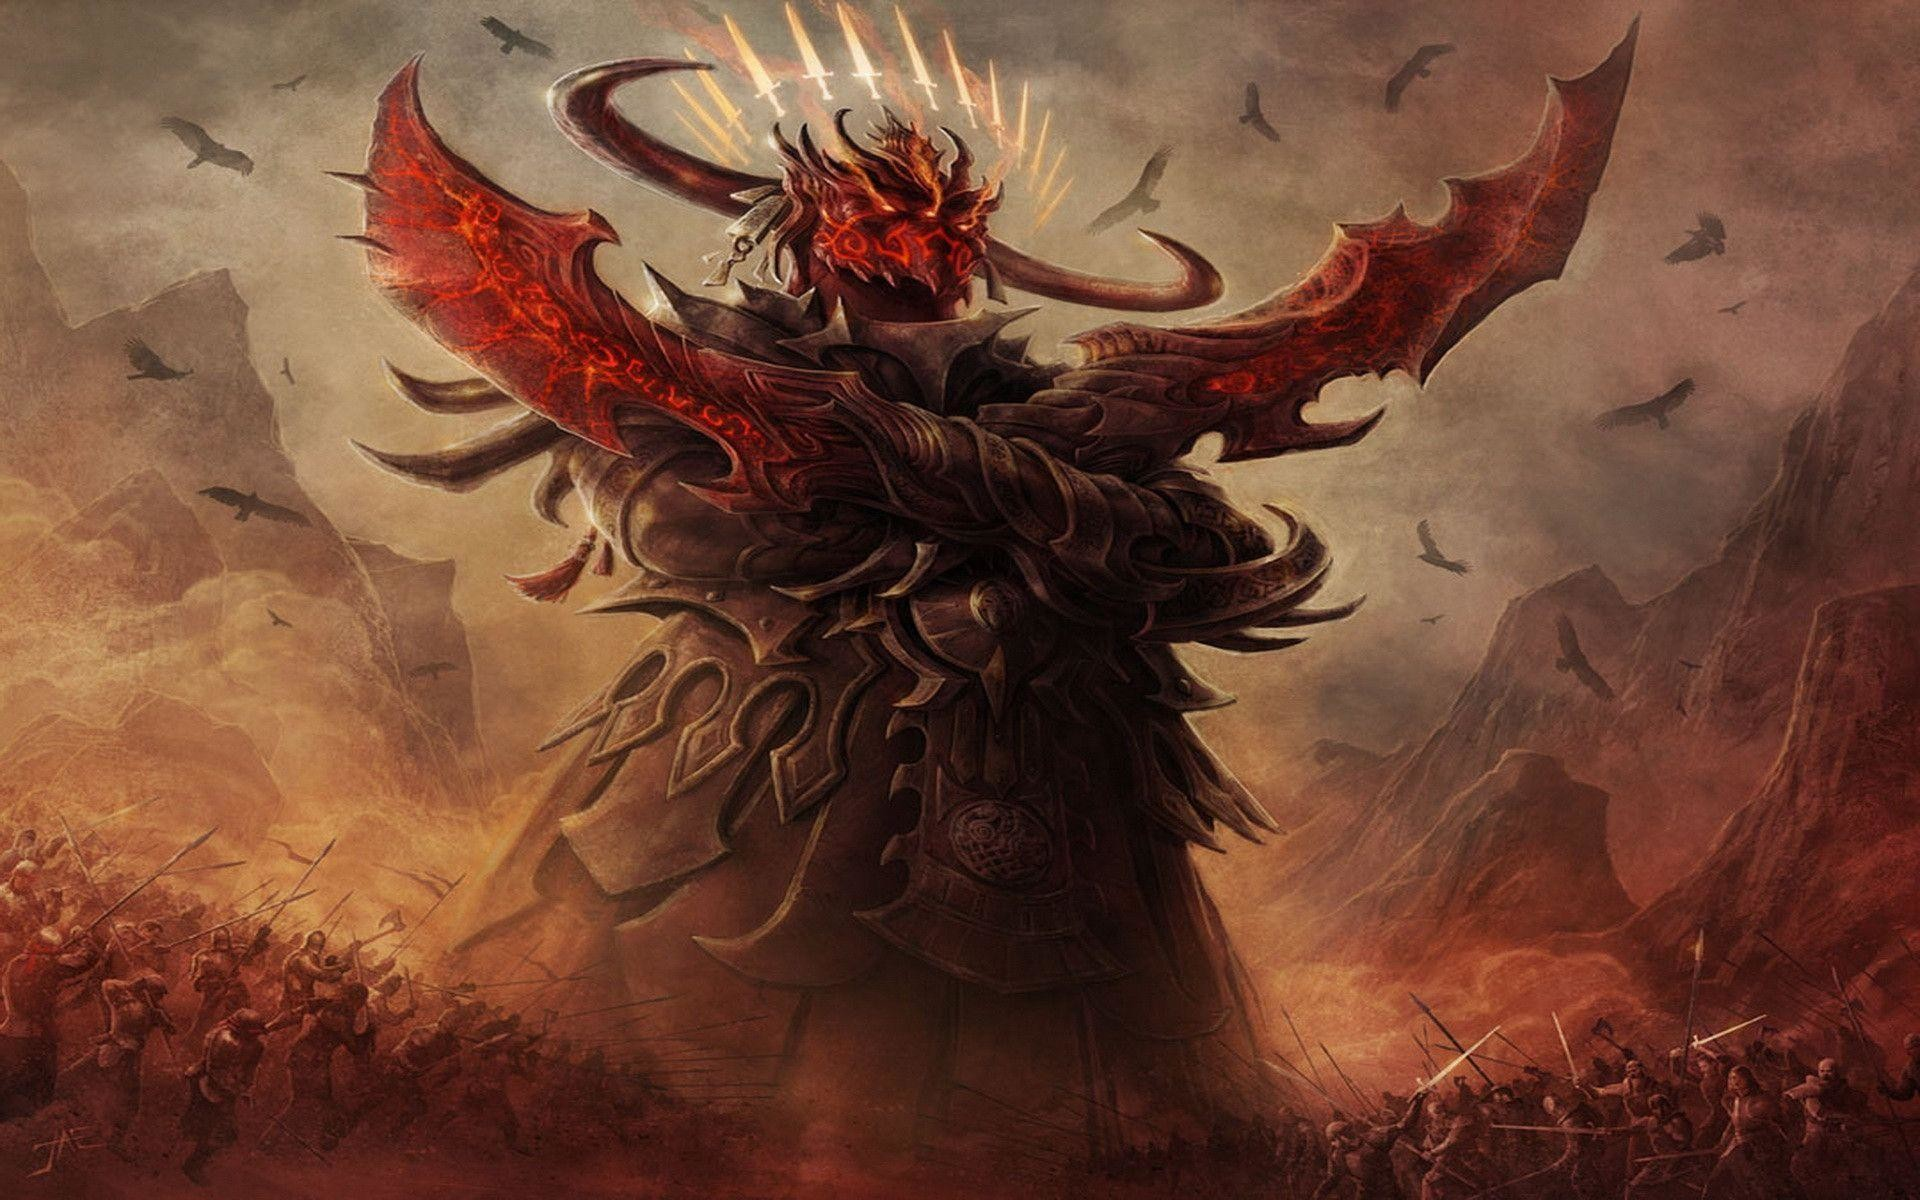 The Gathering Wallpapers Avatar Of Slaughter Art 1920x1200 Wallpaper Teahub Io Start your search now and free your phone. the gathering wallpapers avatar of